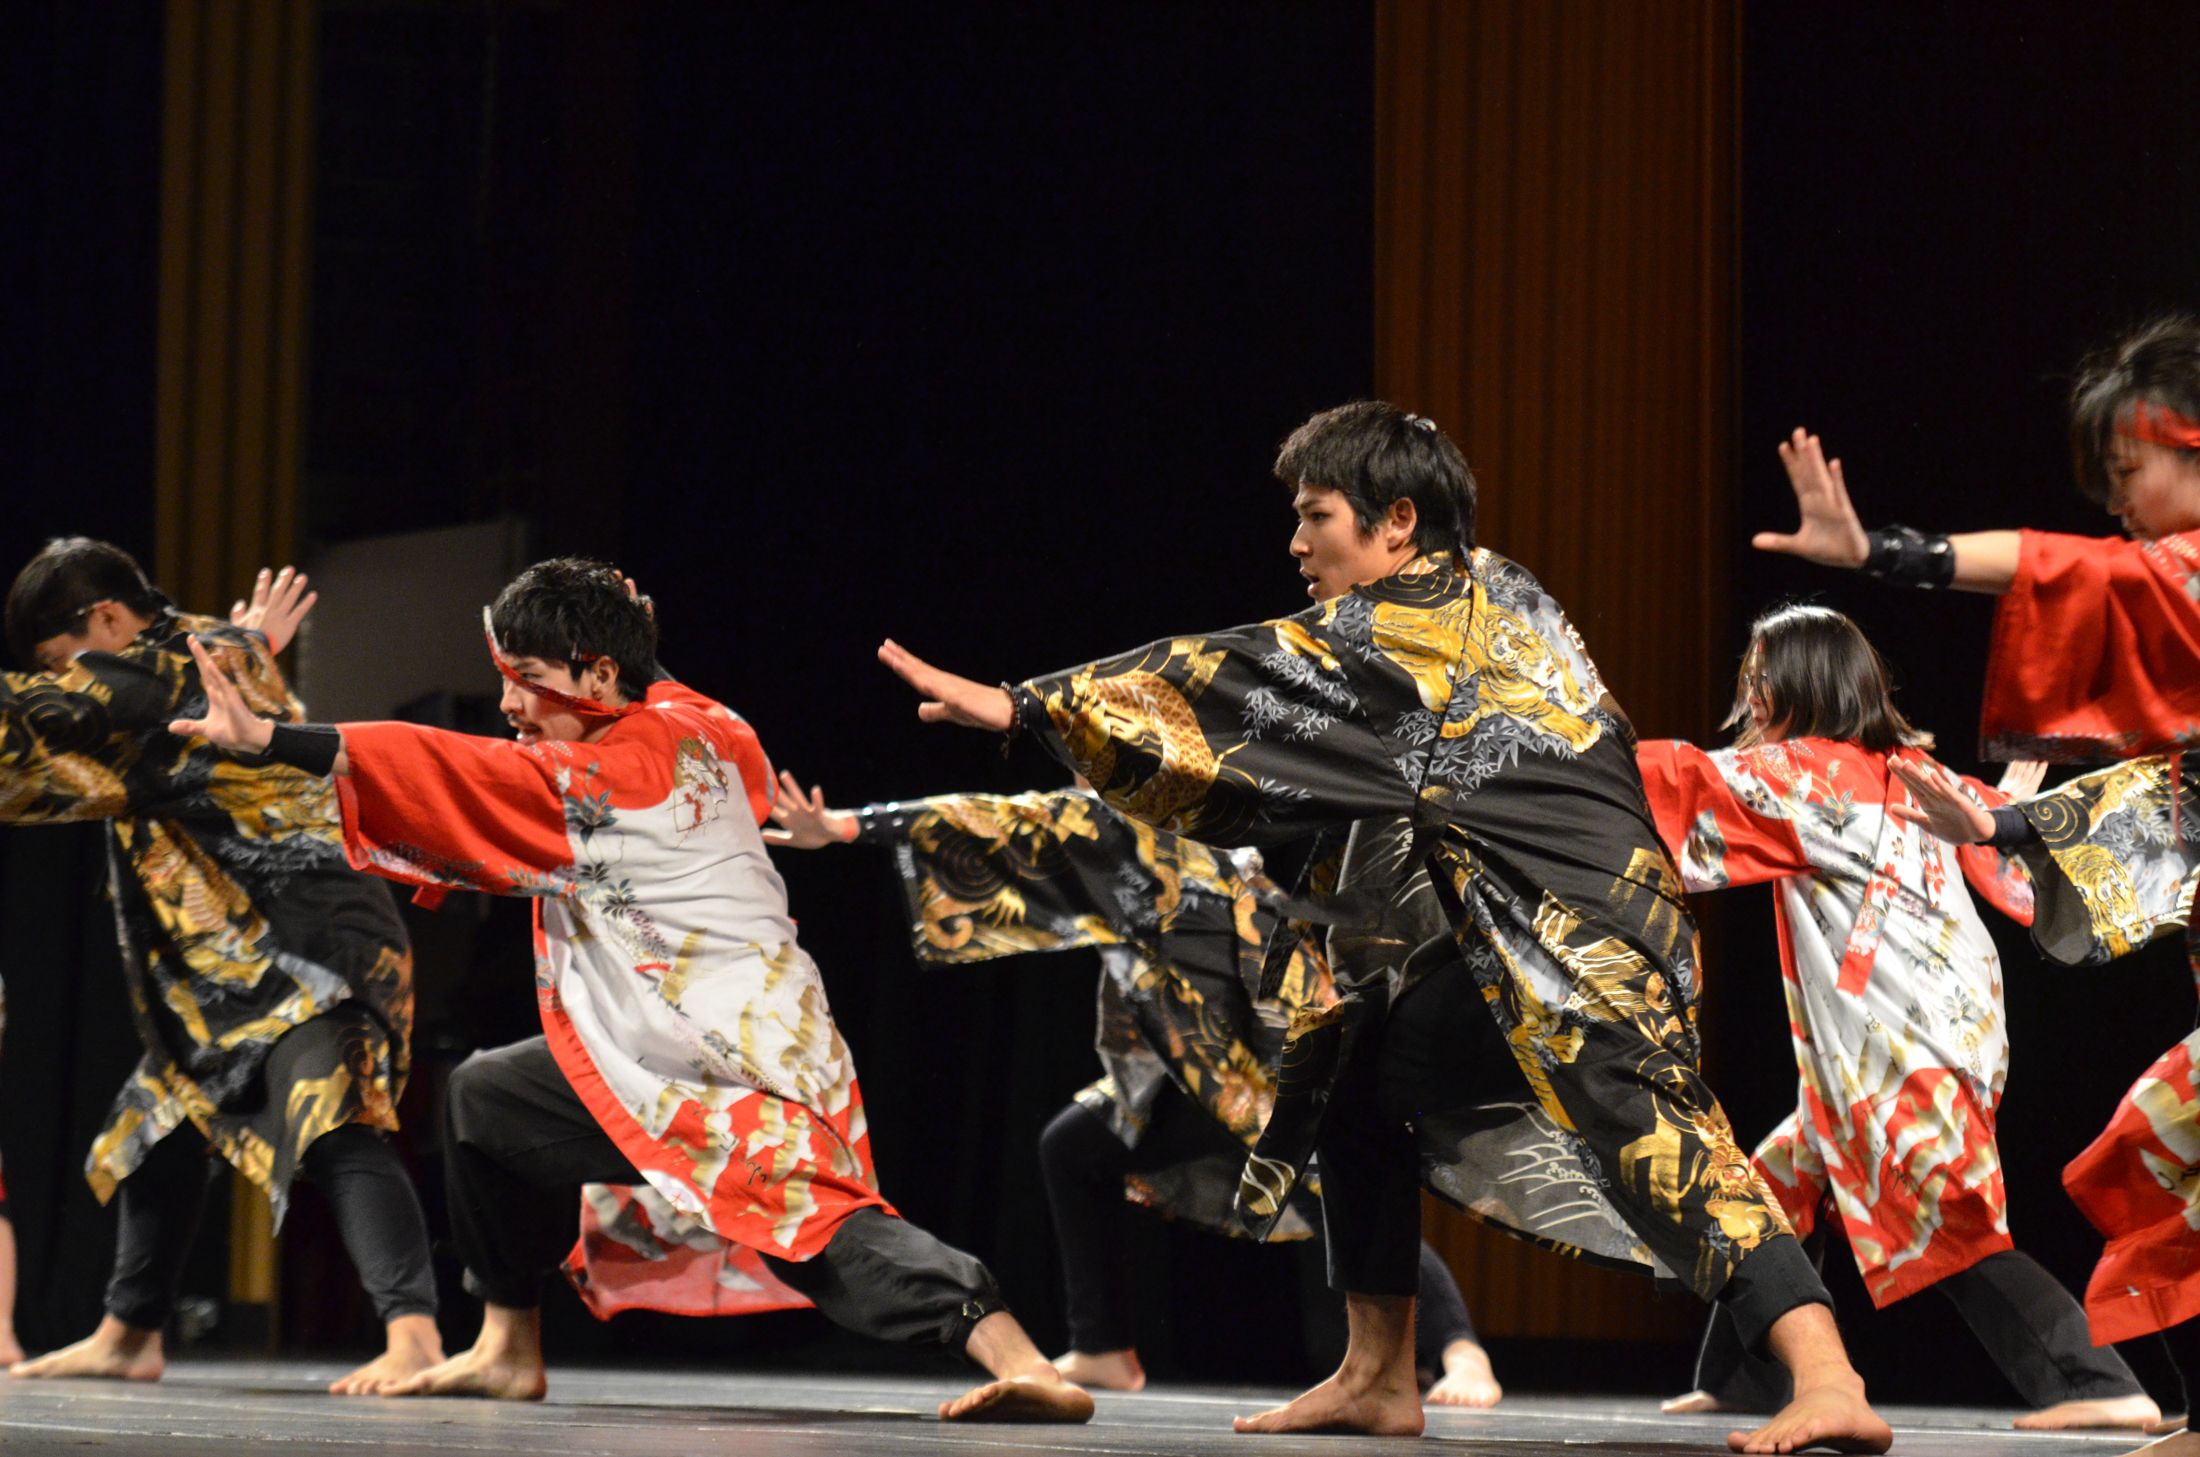 The Japanese Student Association shows off a traditional dance during Asian Nite 2017 on Saturday evening at the Jorgensen Center for the Performing Arts. (Akshara Thejaswi/The Daily Campus)